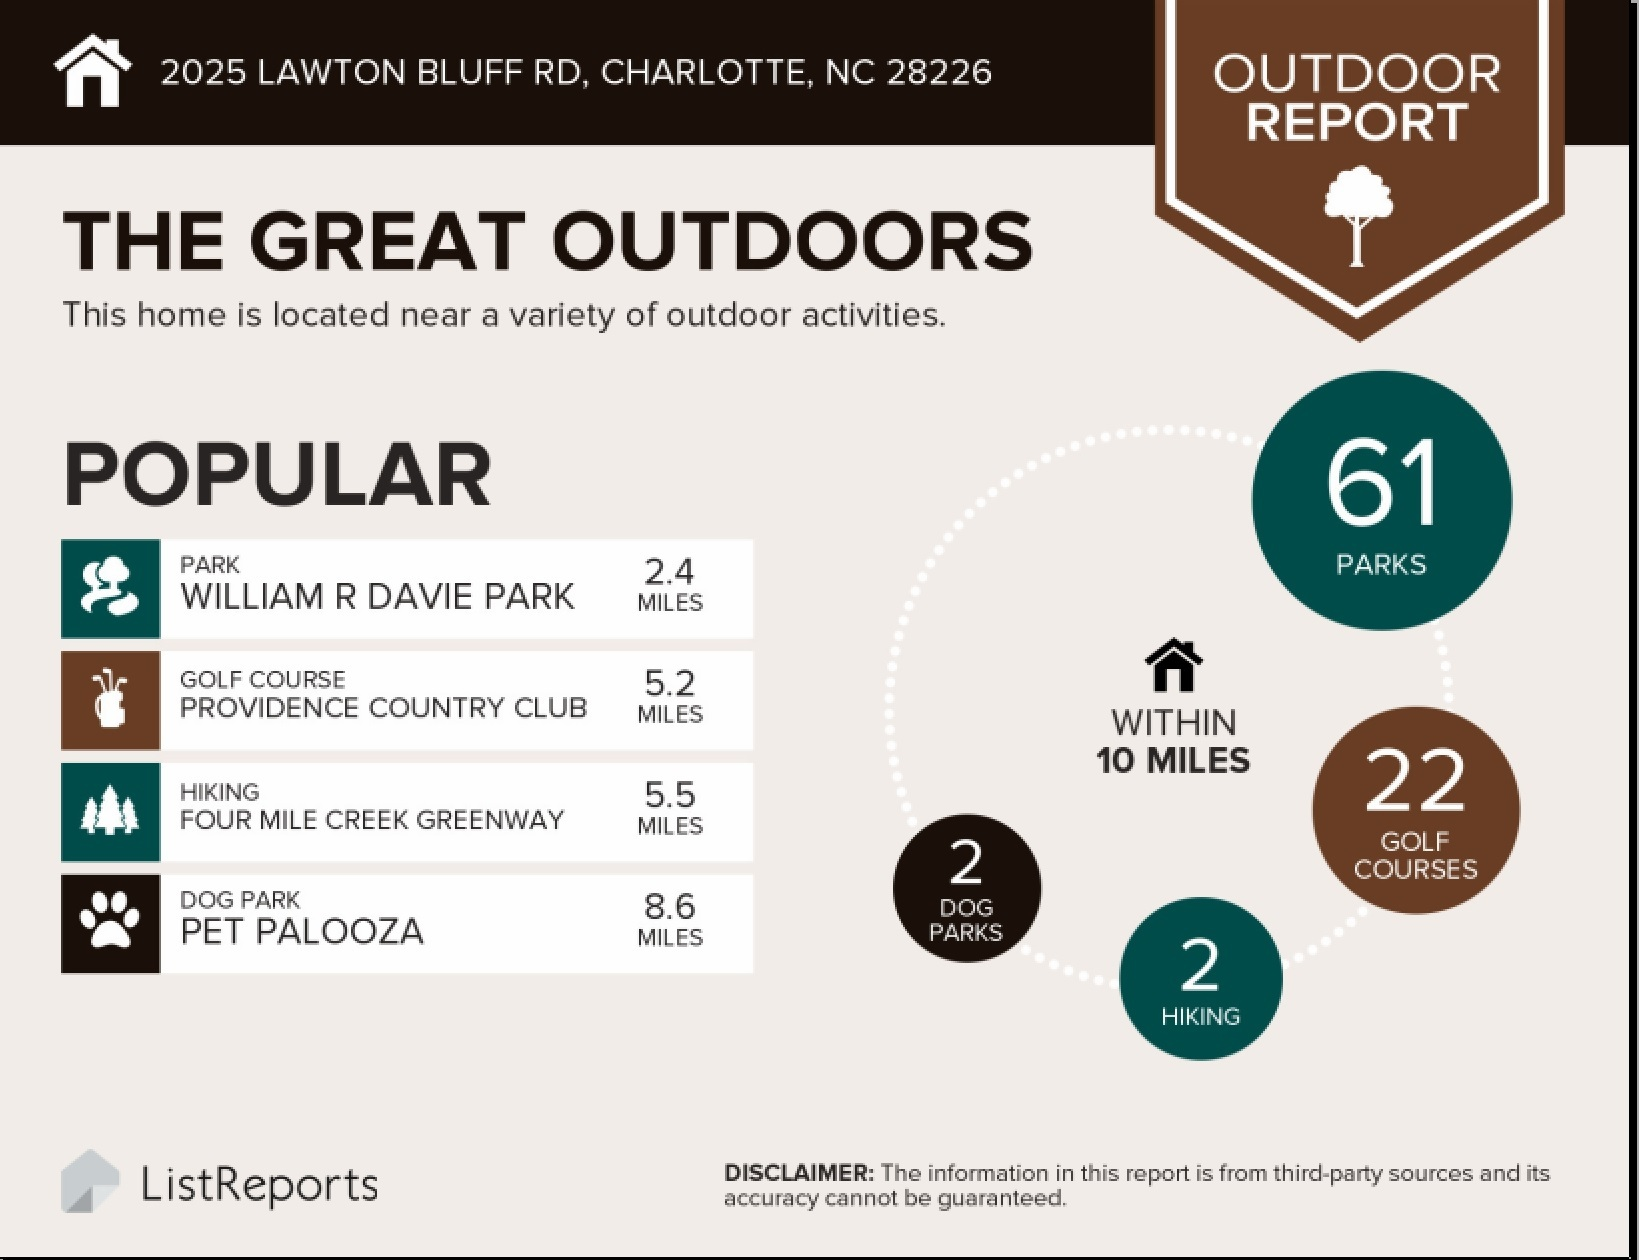 Candlewyck in Charlotte, NC close to outdoor recreation